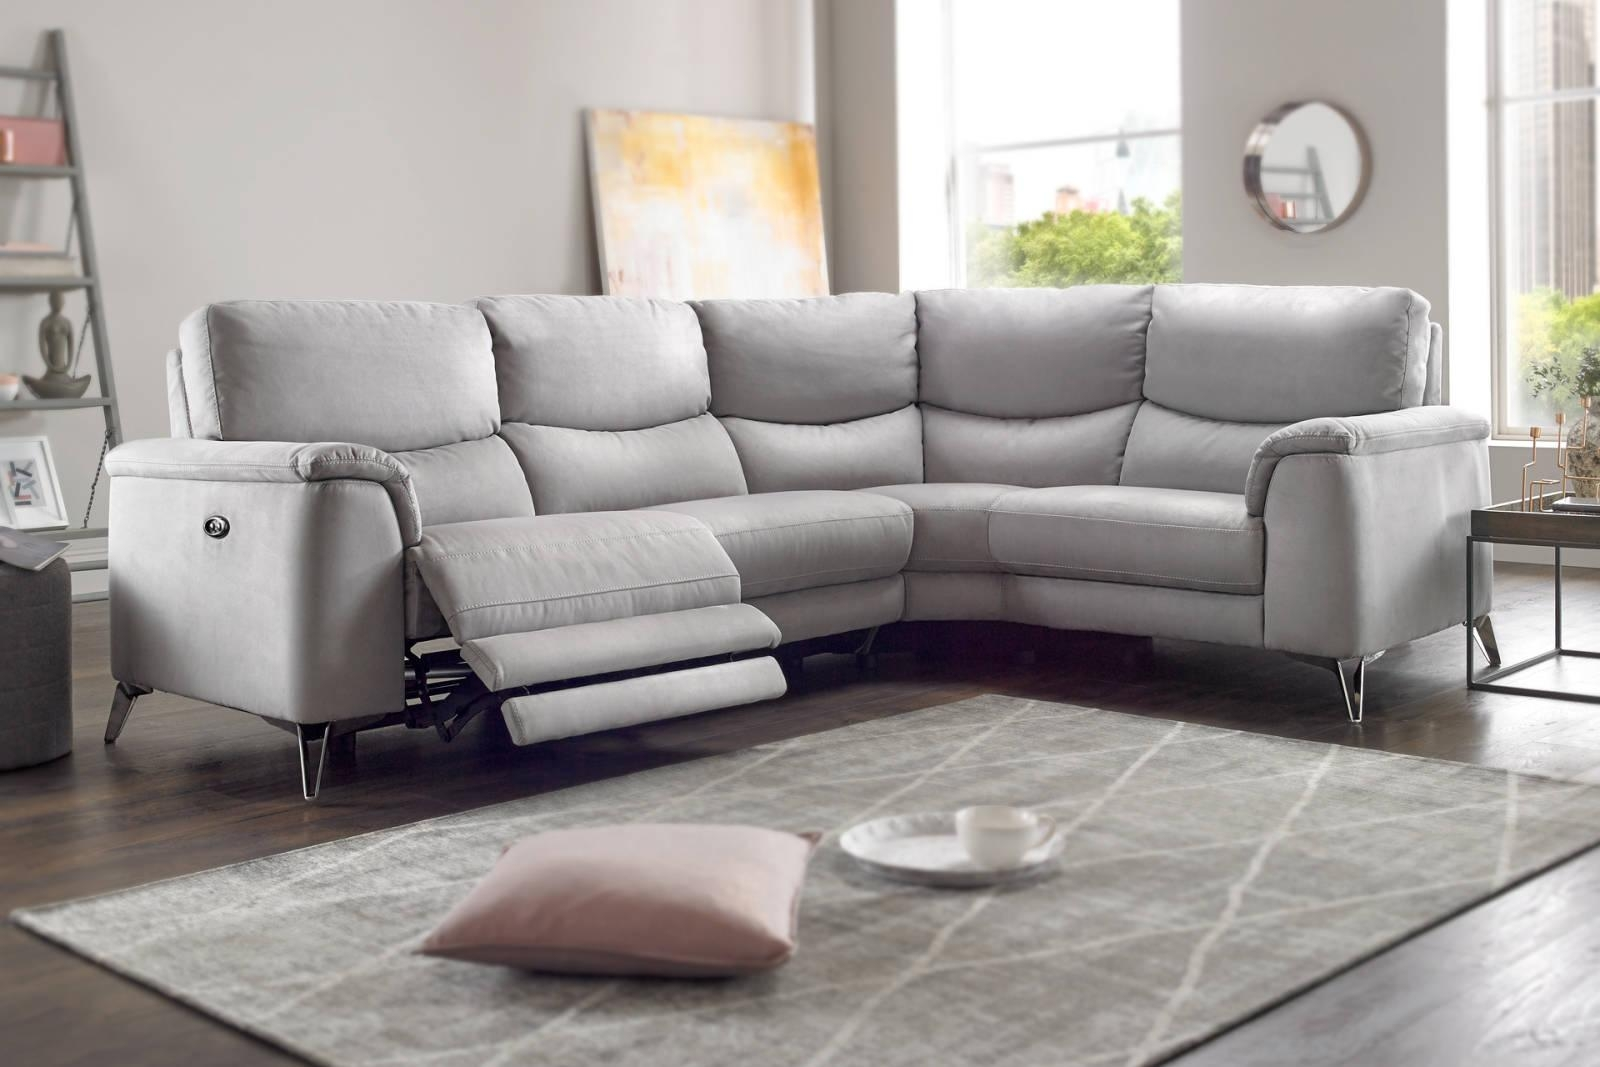 Corner Sofas In Leather, Fabric | Sofology Inside Corner Sofa Leather (View 18 of 20)